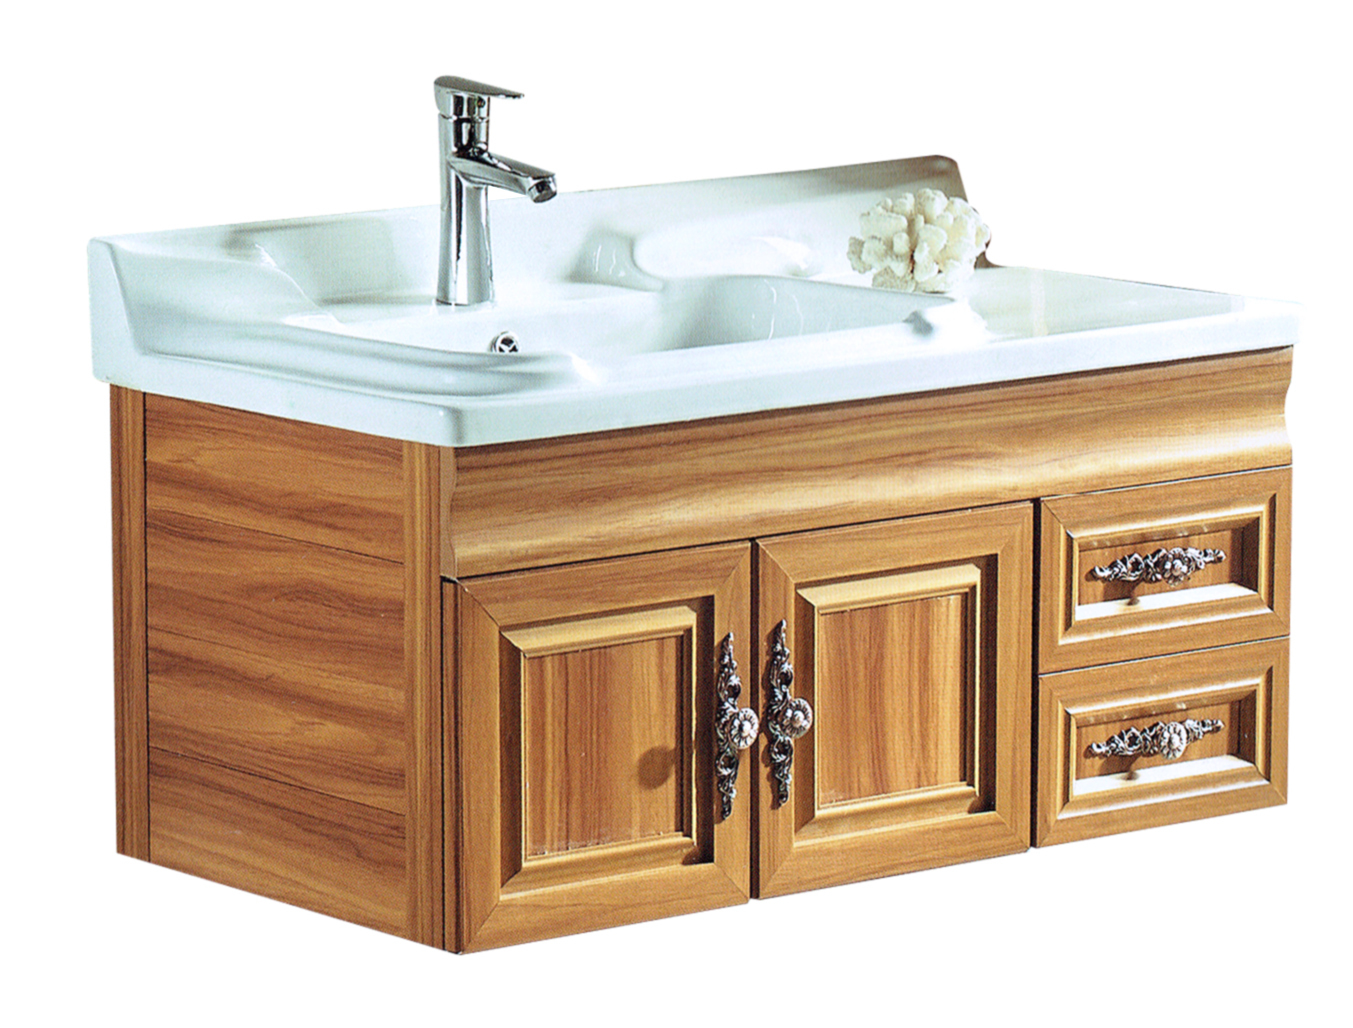 Basin with cabinet JR 3750.jpg